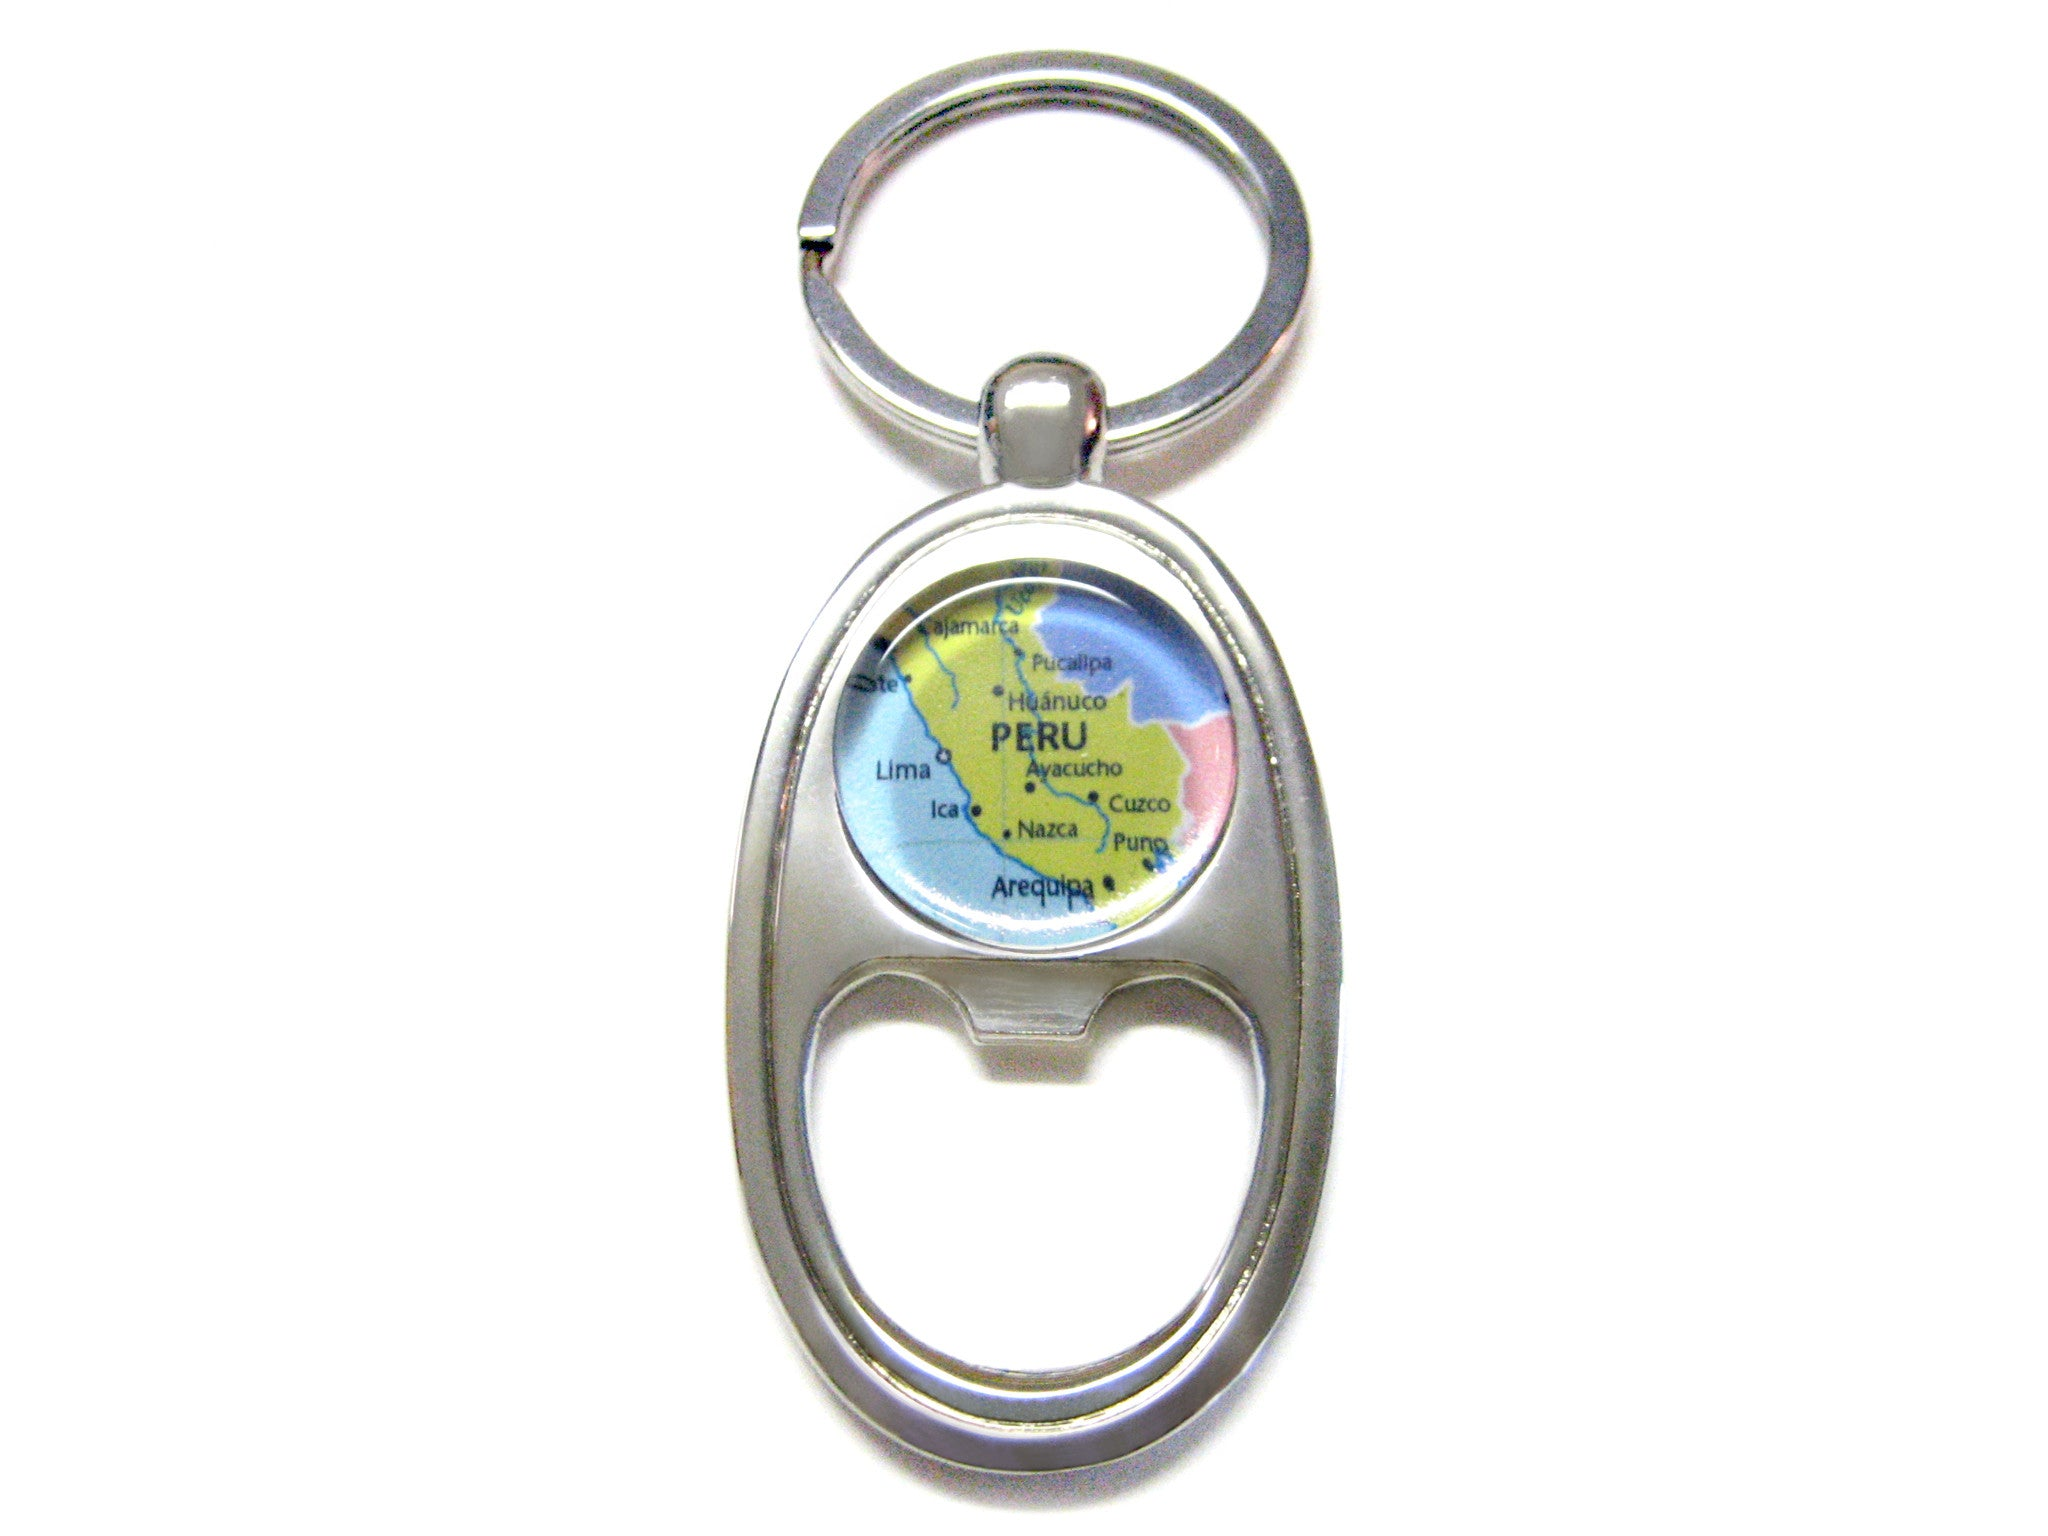 Peru Map Bottle Opener Key Chain